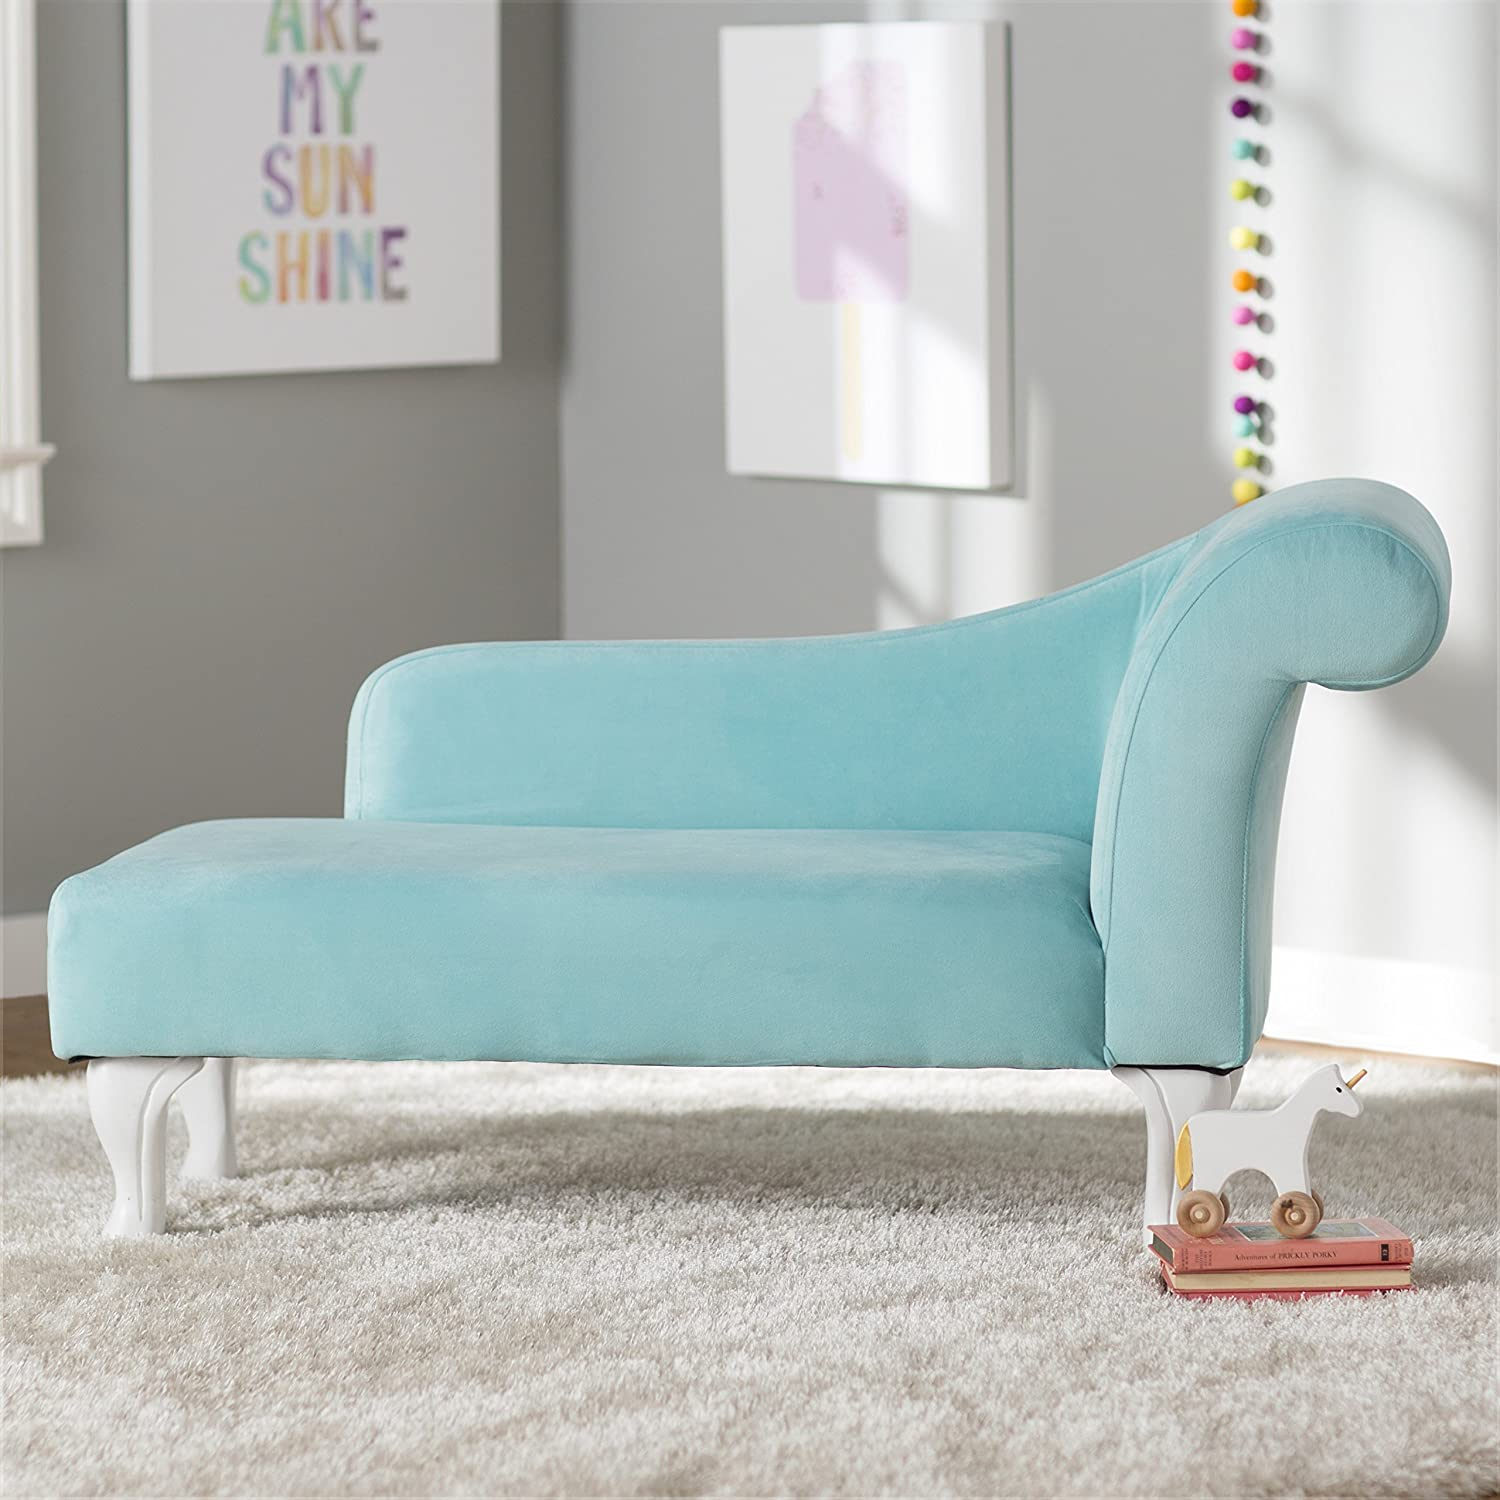 Turquoise Living Room Furniture Amazoncom Contemporary Stylish Furniture Kids Chaise Lounge